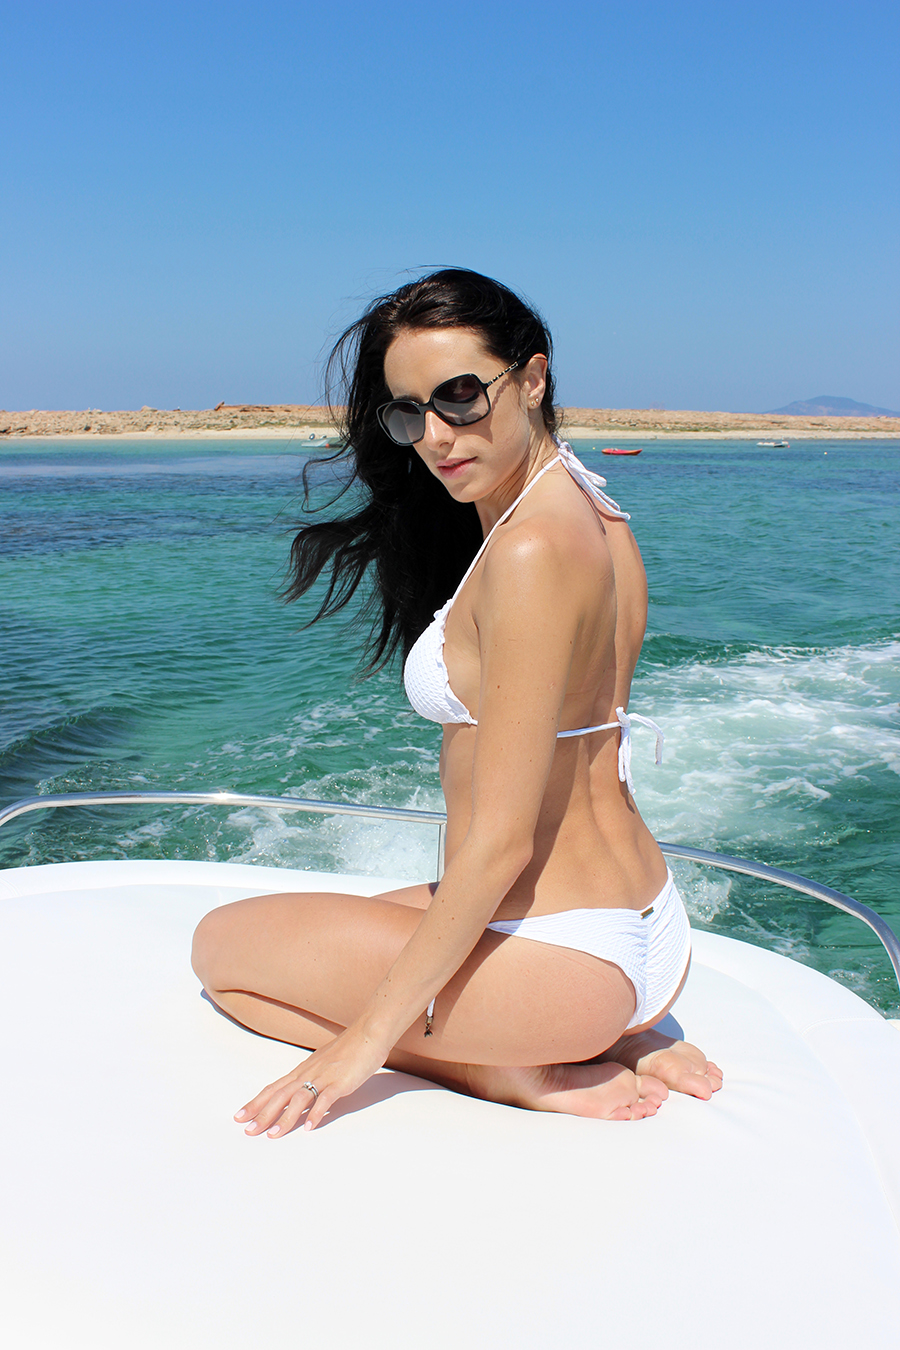 Clutch and Carry on - yacht trip ibiza - white vix bikini - style and travel blog 18